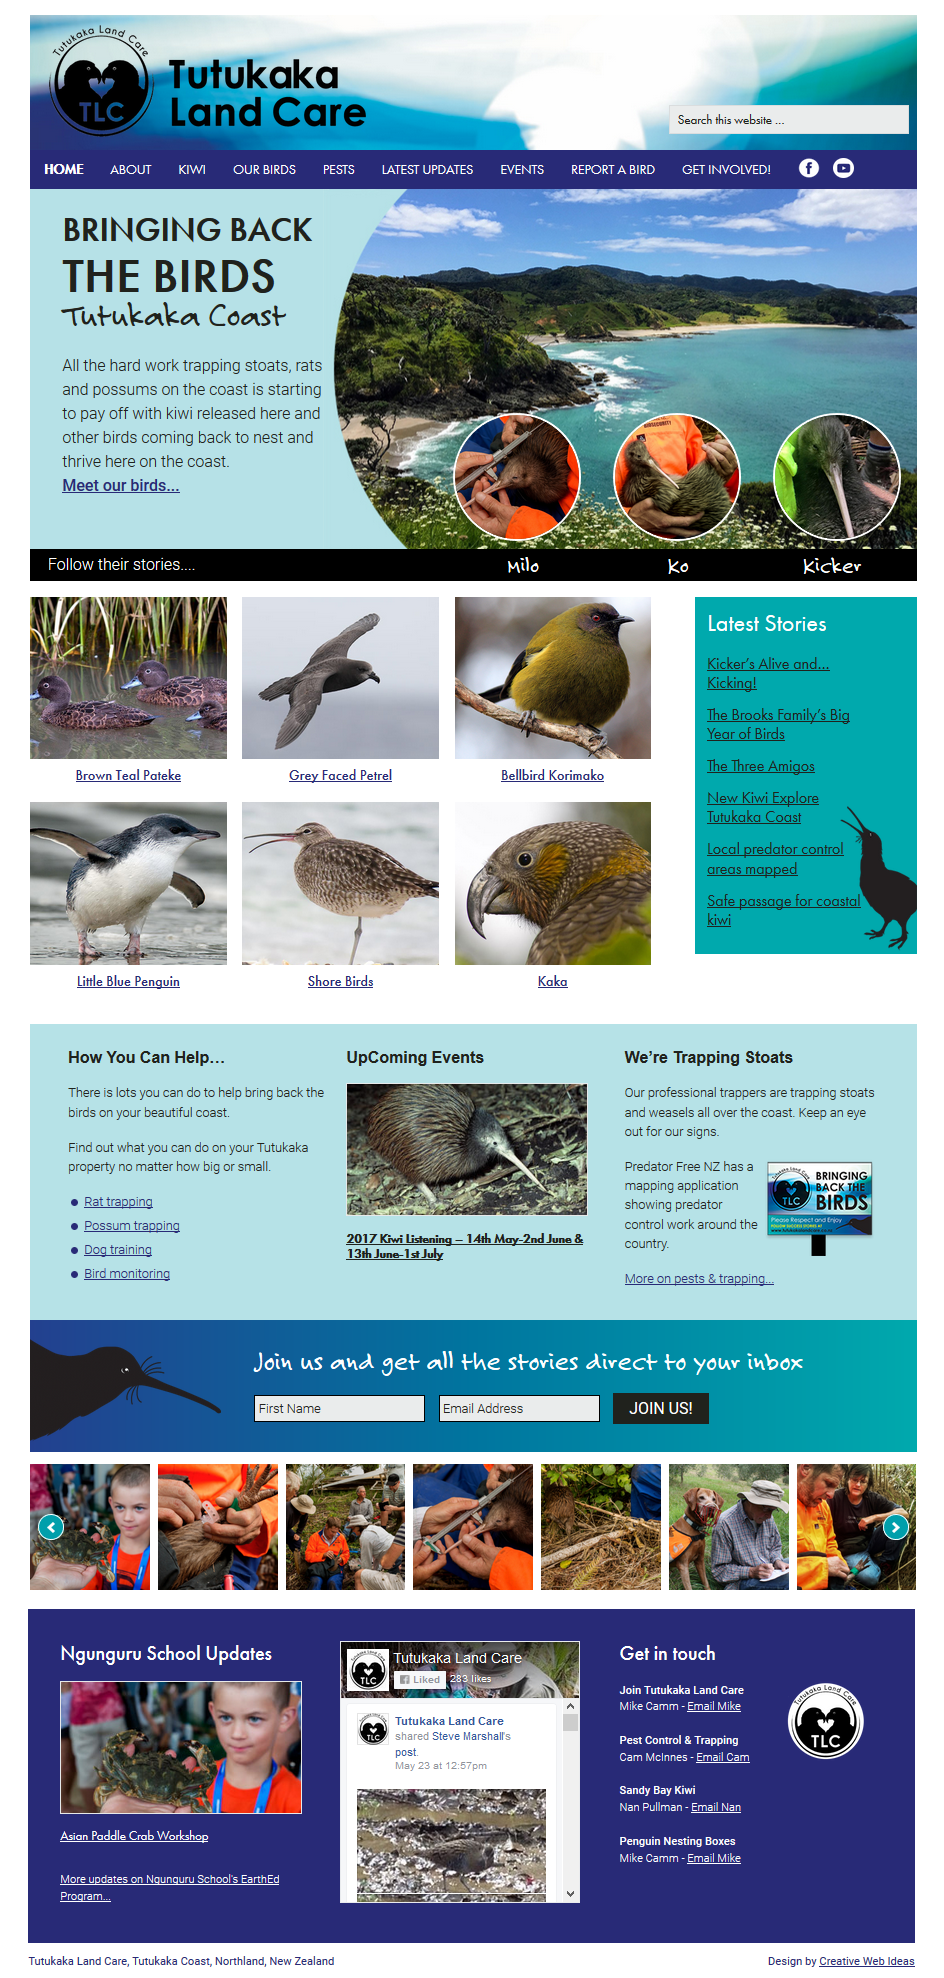 Tutukaka Land Care website homepage designed by Creative Web Ideas in Whangarei